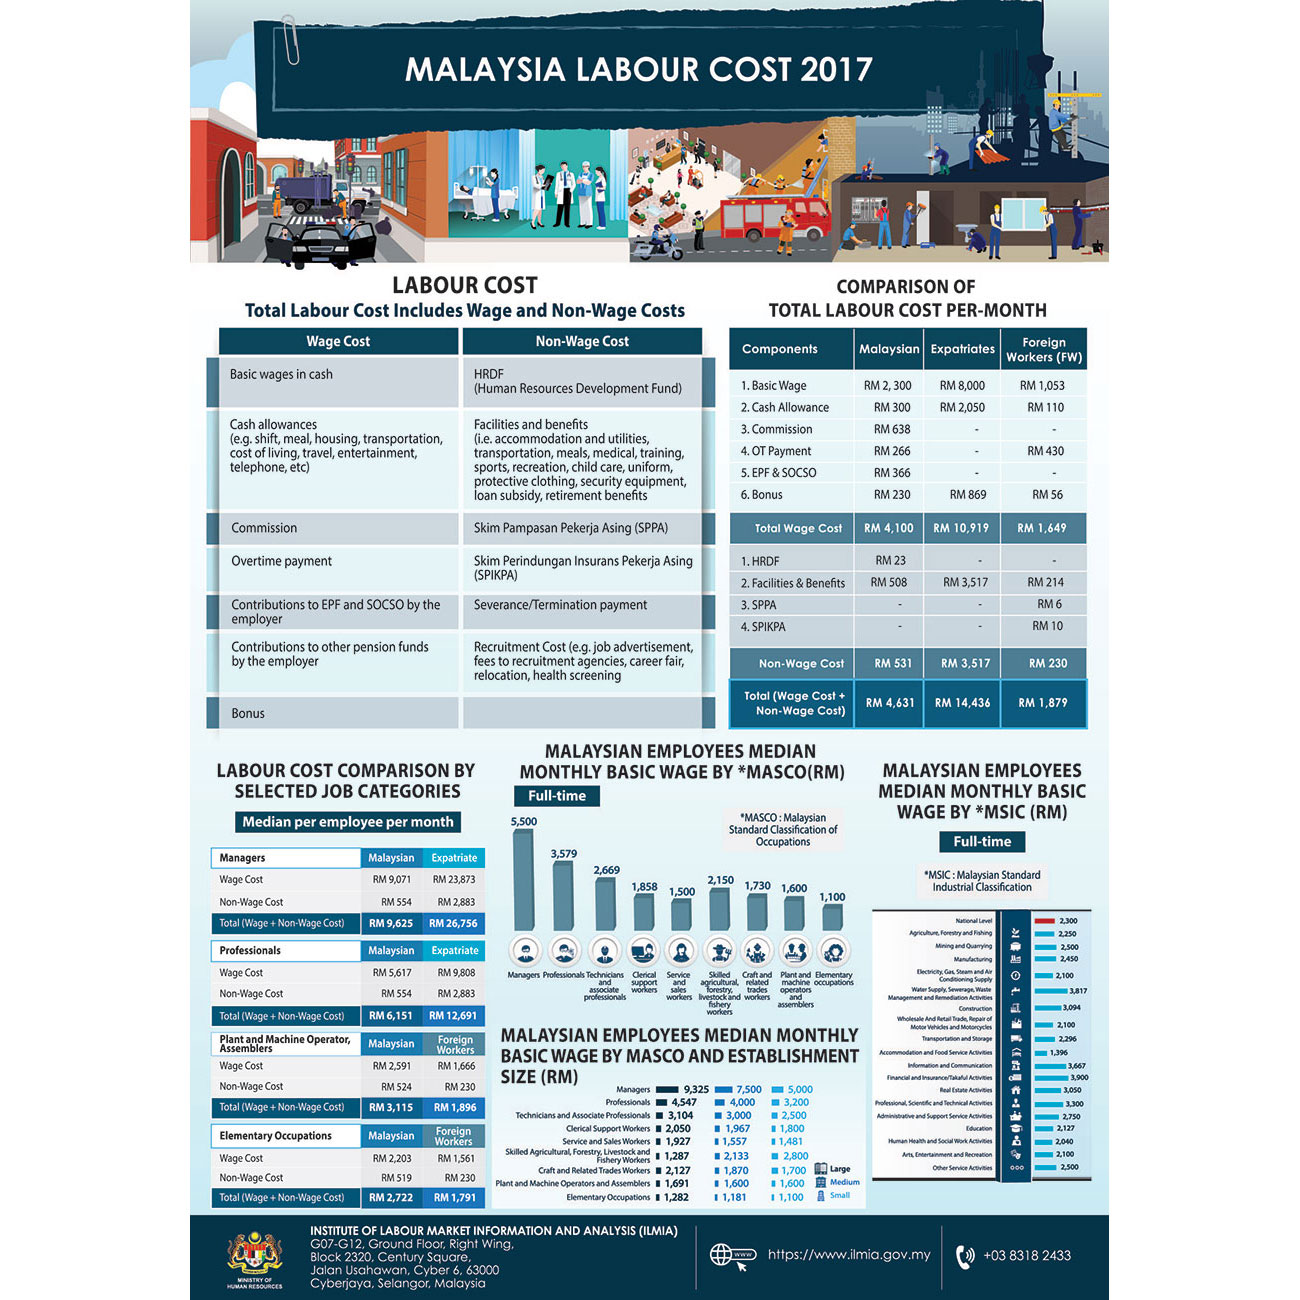 FINAL 09 A1 Malaysia Labour Cost 2017 01